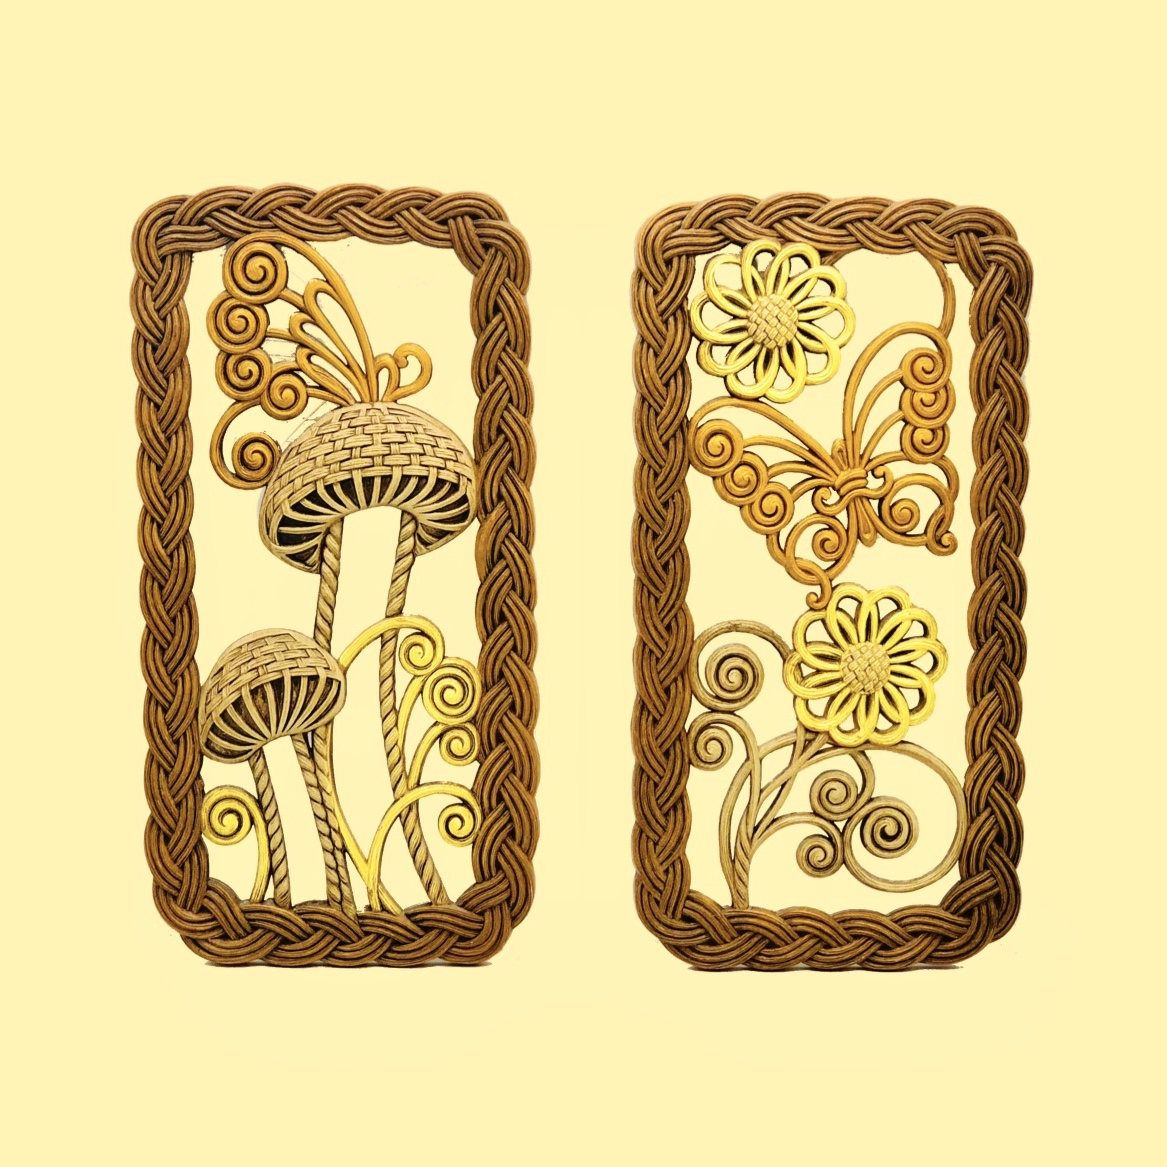 70s Retro Wall Hangings, Faux Wicker Framed Mushrooms and Butterfly ...